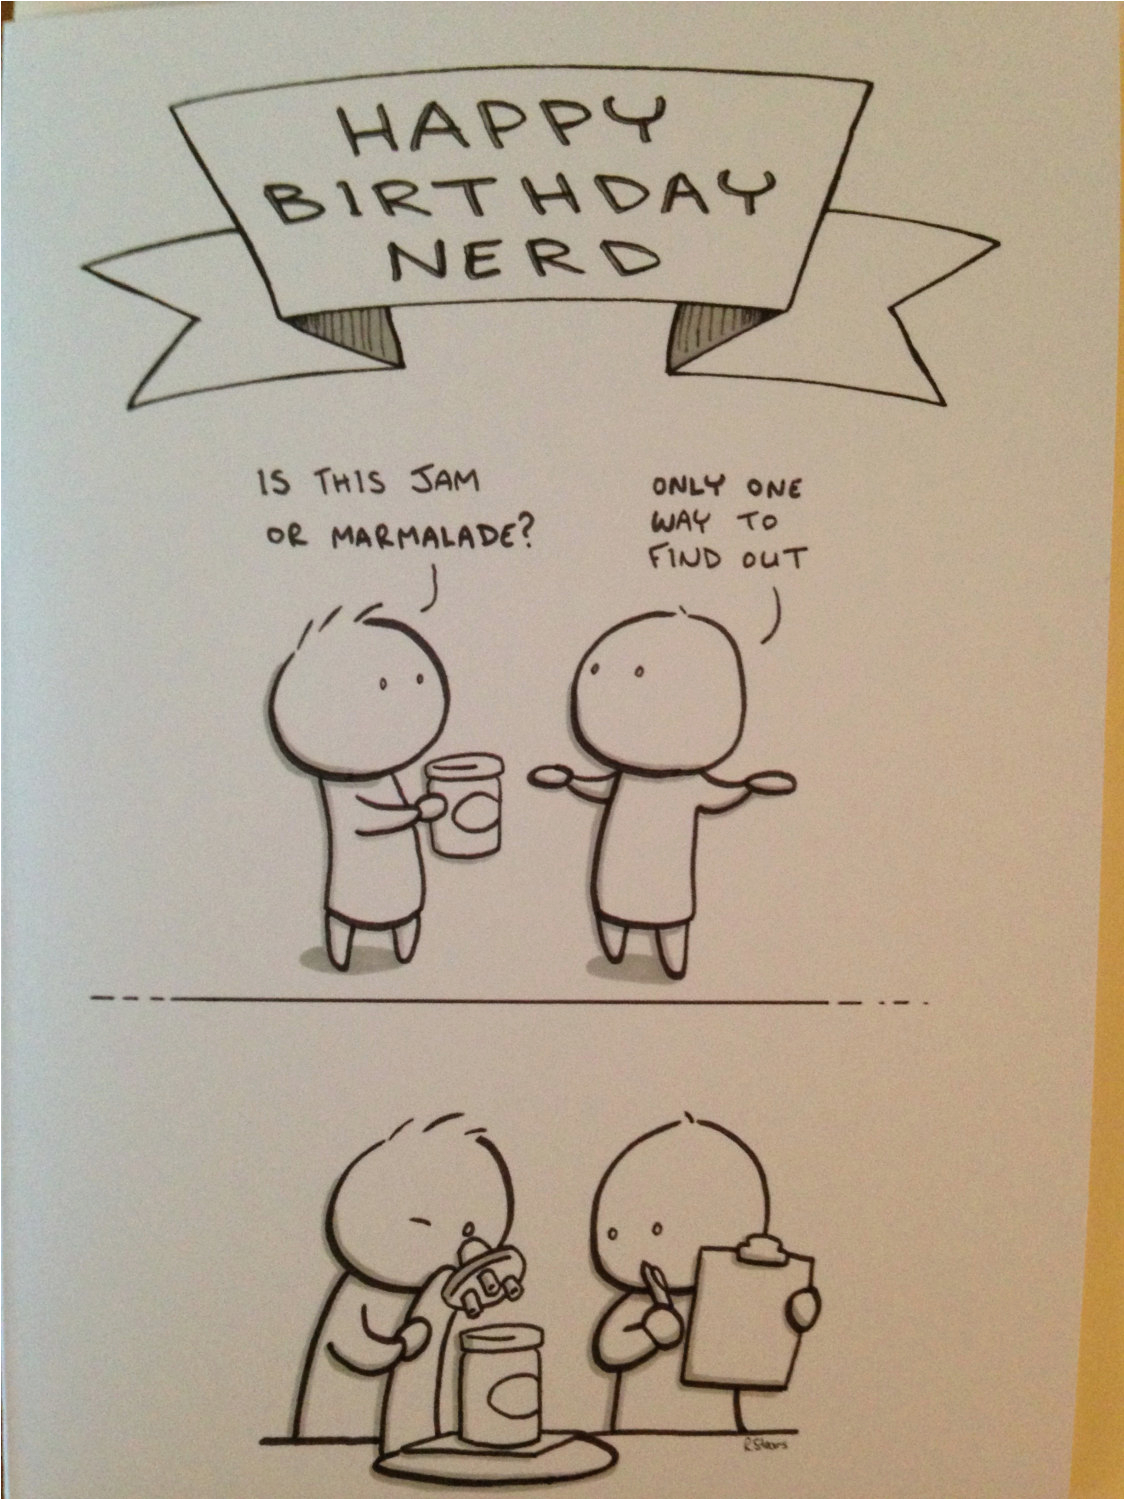 Nerd Birthday Cards Funny Birthday Card Happy Birthday Nerd